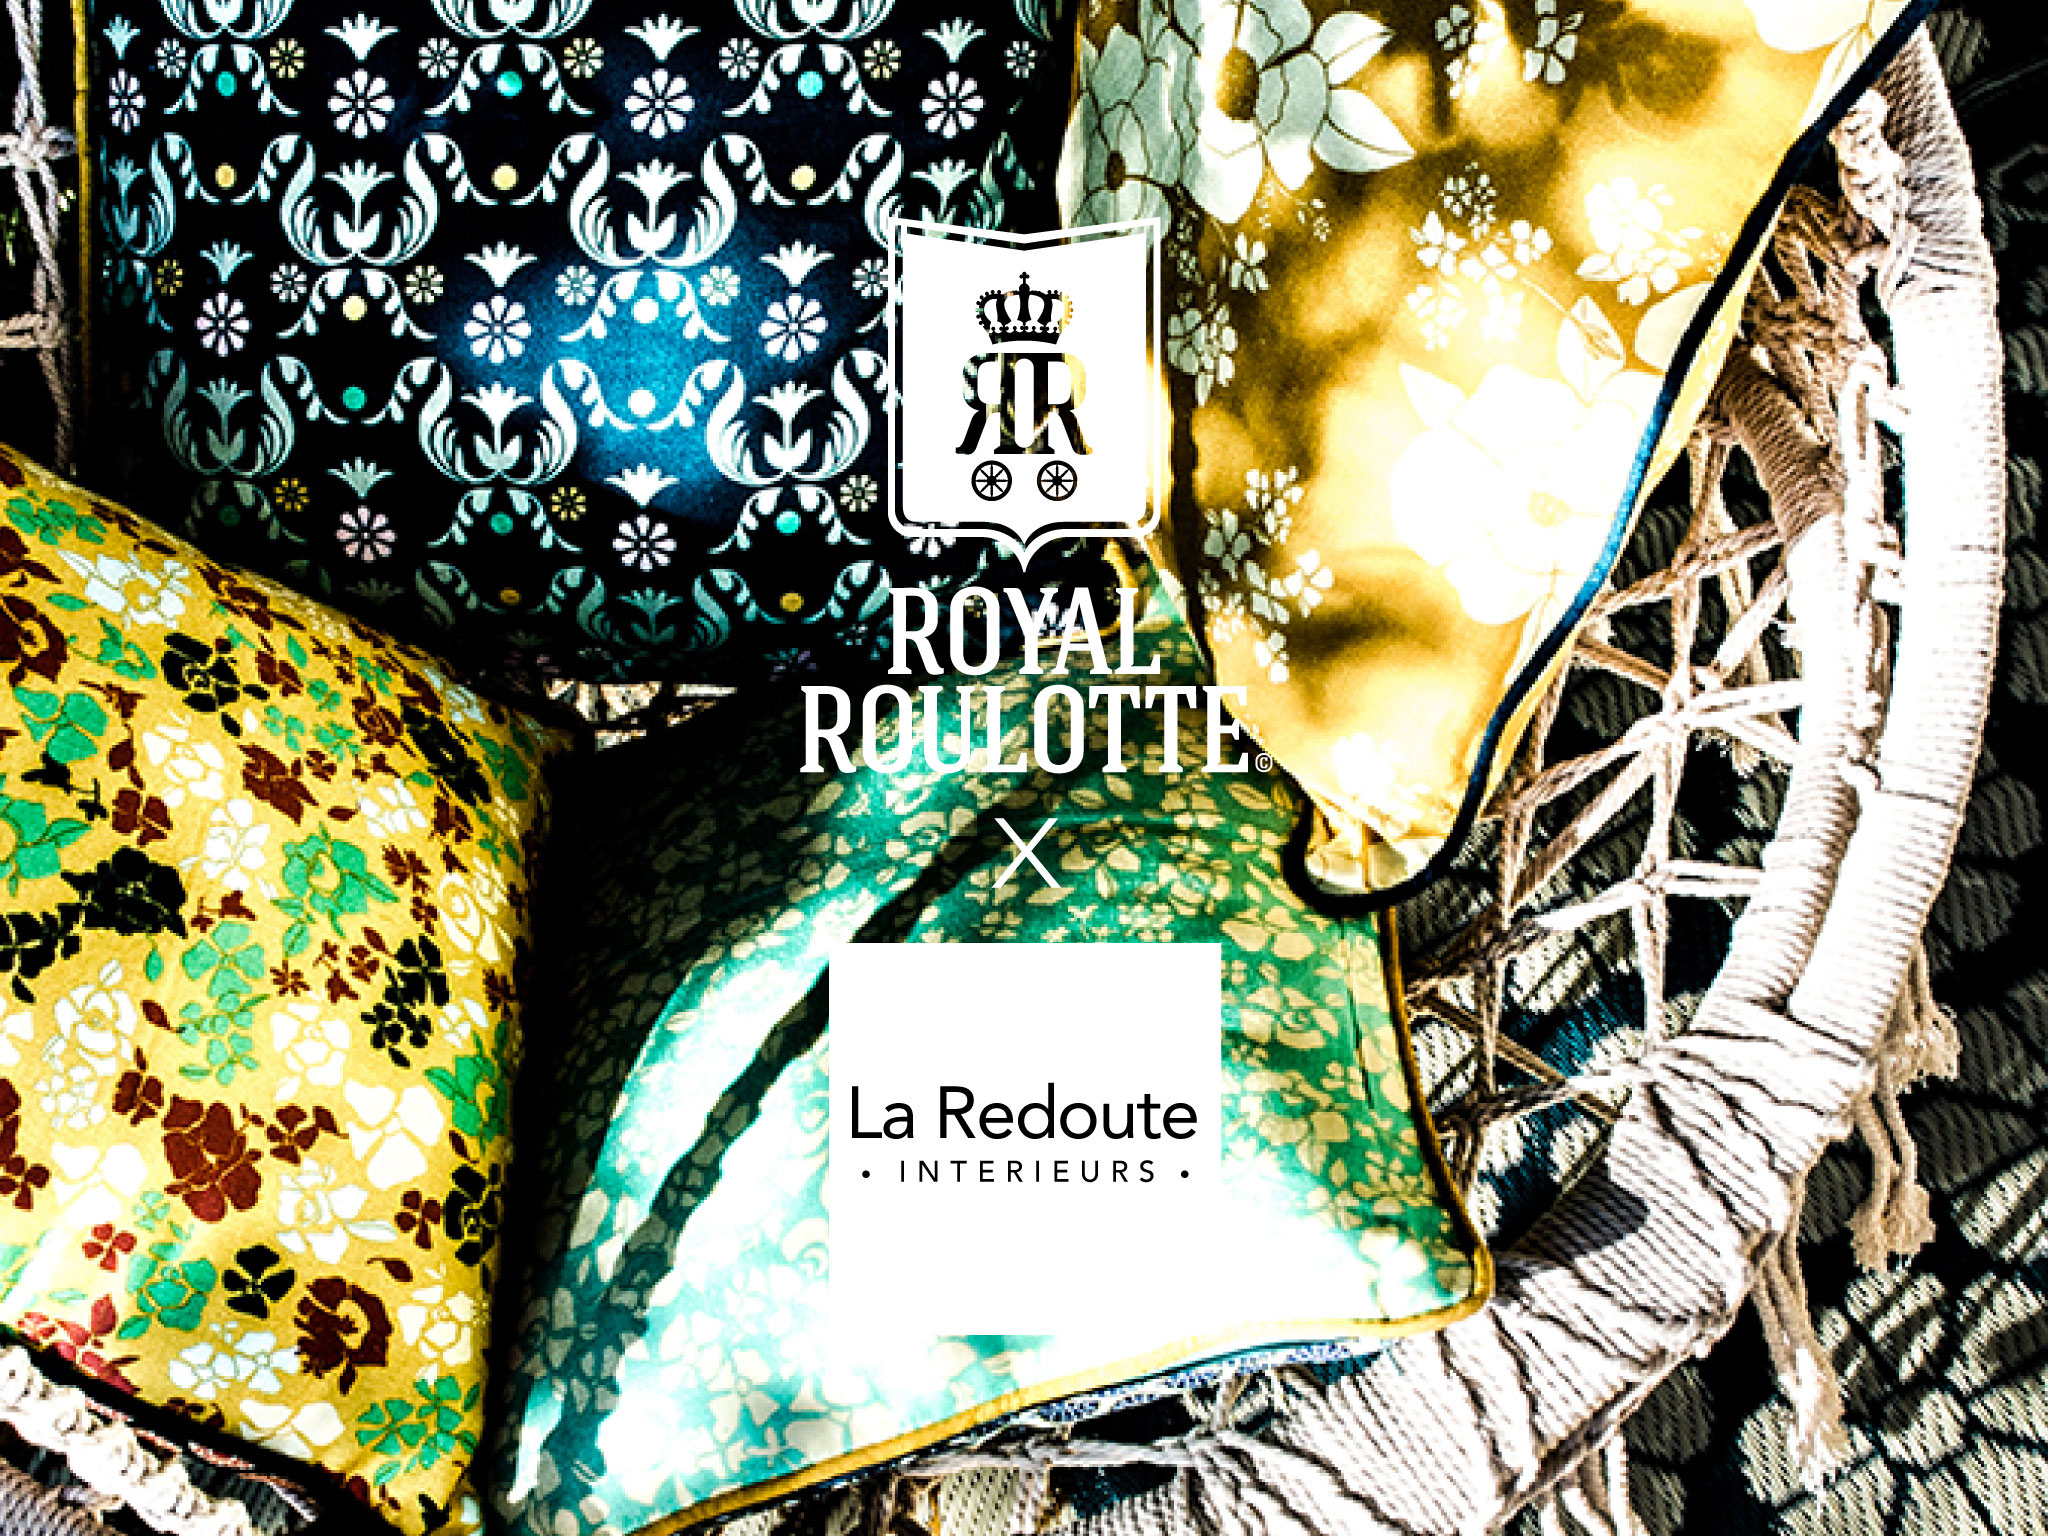 ROYAL ROULOTTE X LA REDOUTEINTERIEURS ★ COLLECTION CAPSULE